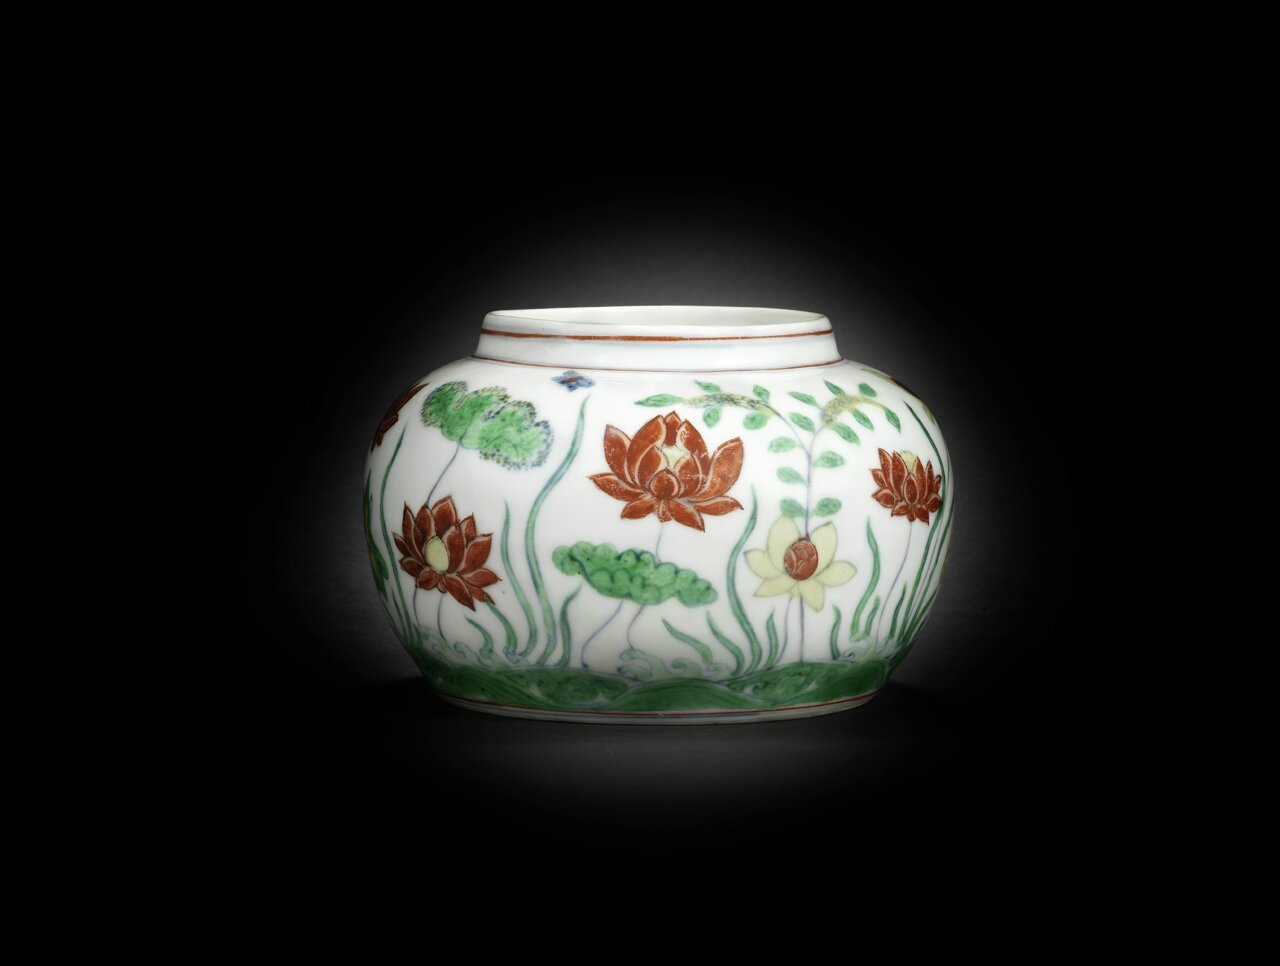 An extremely rare and important doucai 'lotus pond' jar, Chenghua six-character mark and of the period. Diameter: 17 cm Provenance: a European private collection. Photo courtesy Bonhams.